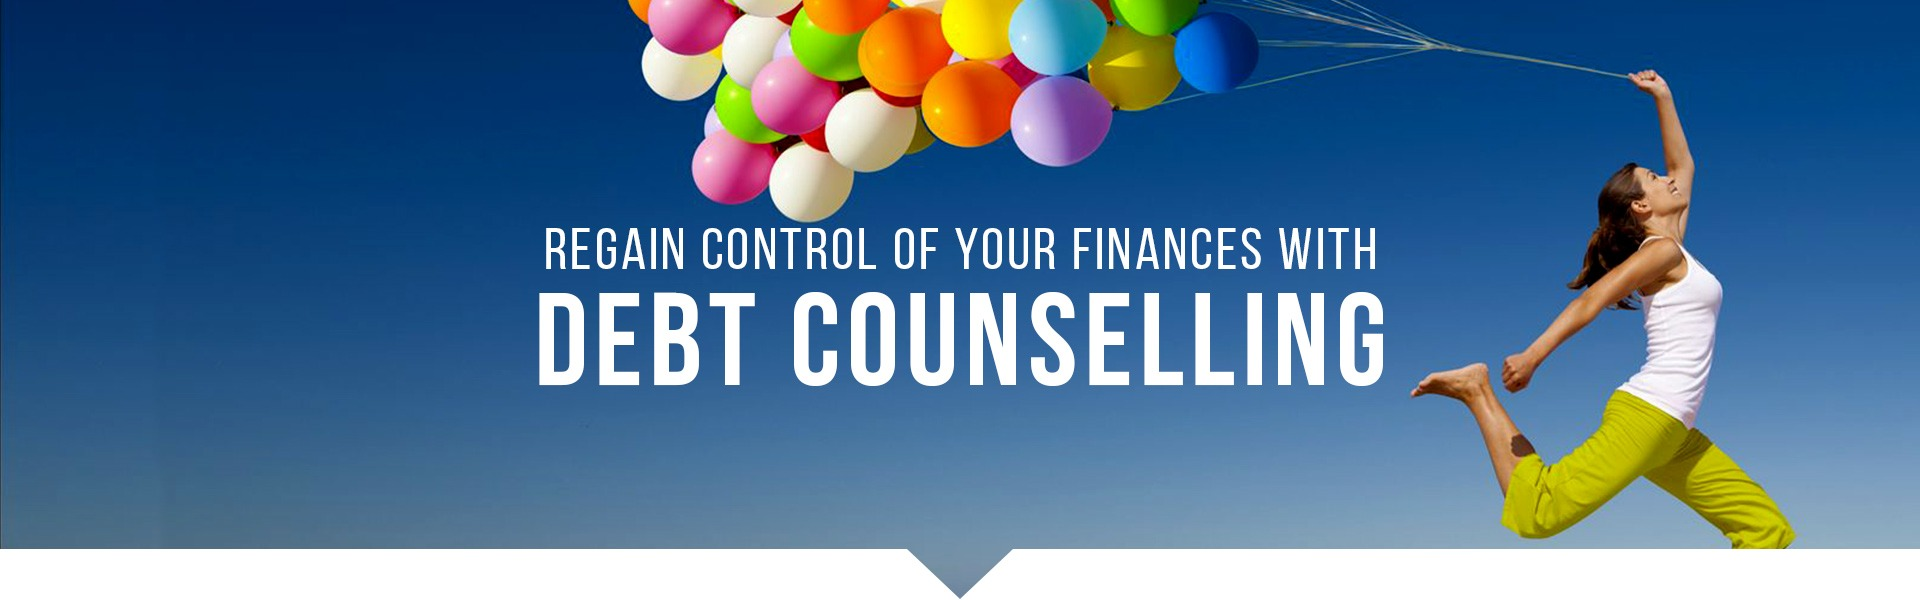 debt-counselling-banner2018